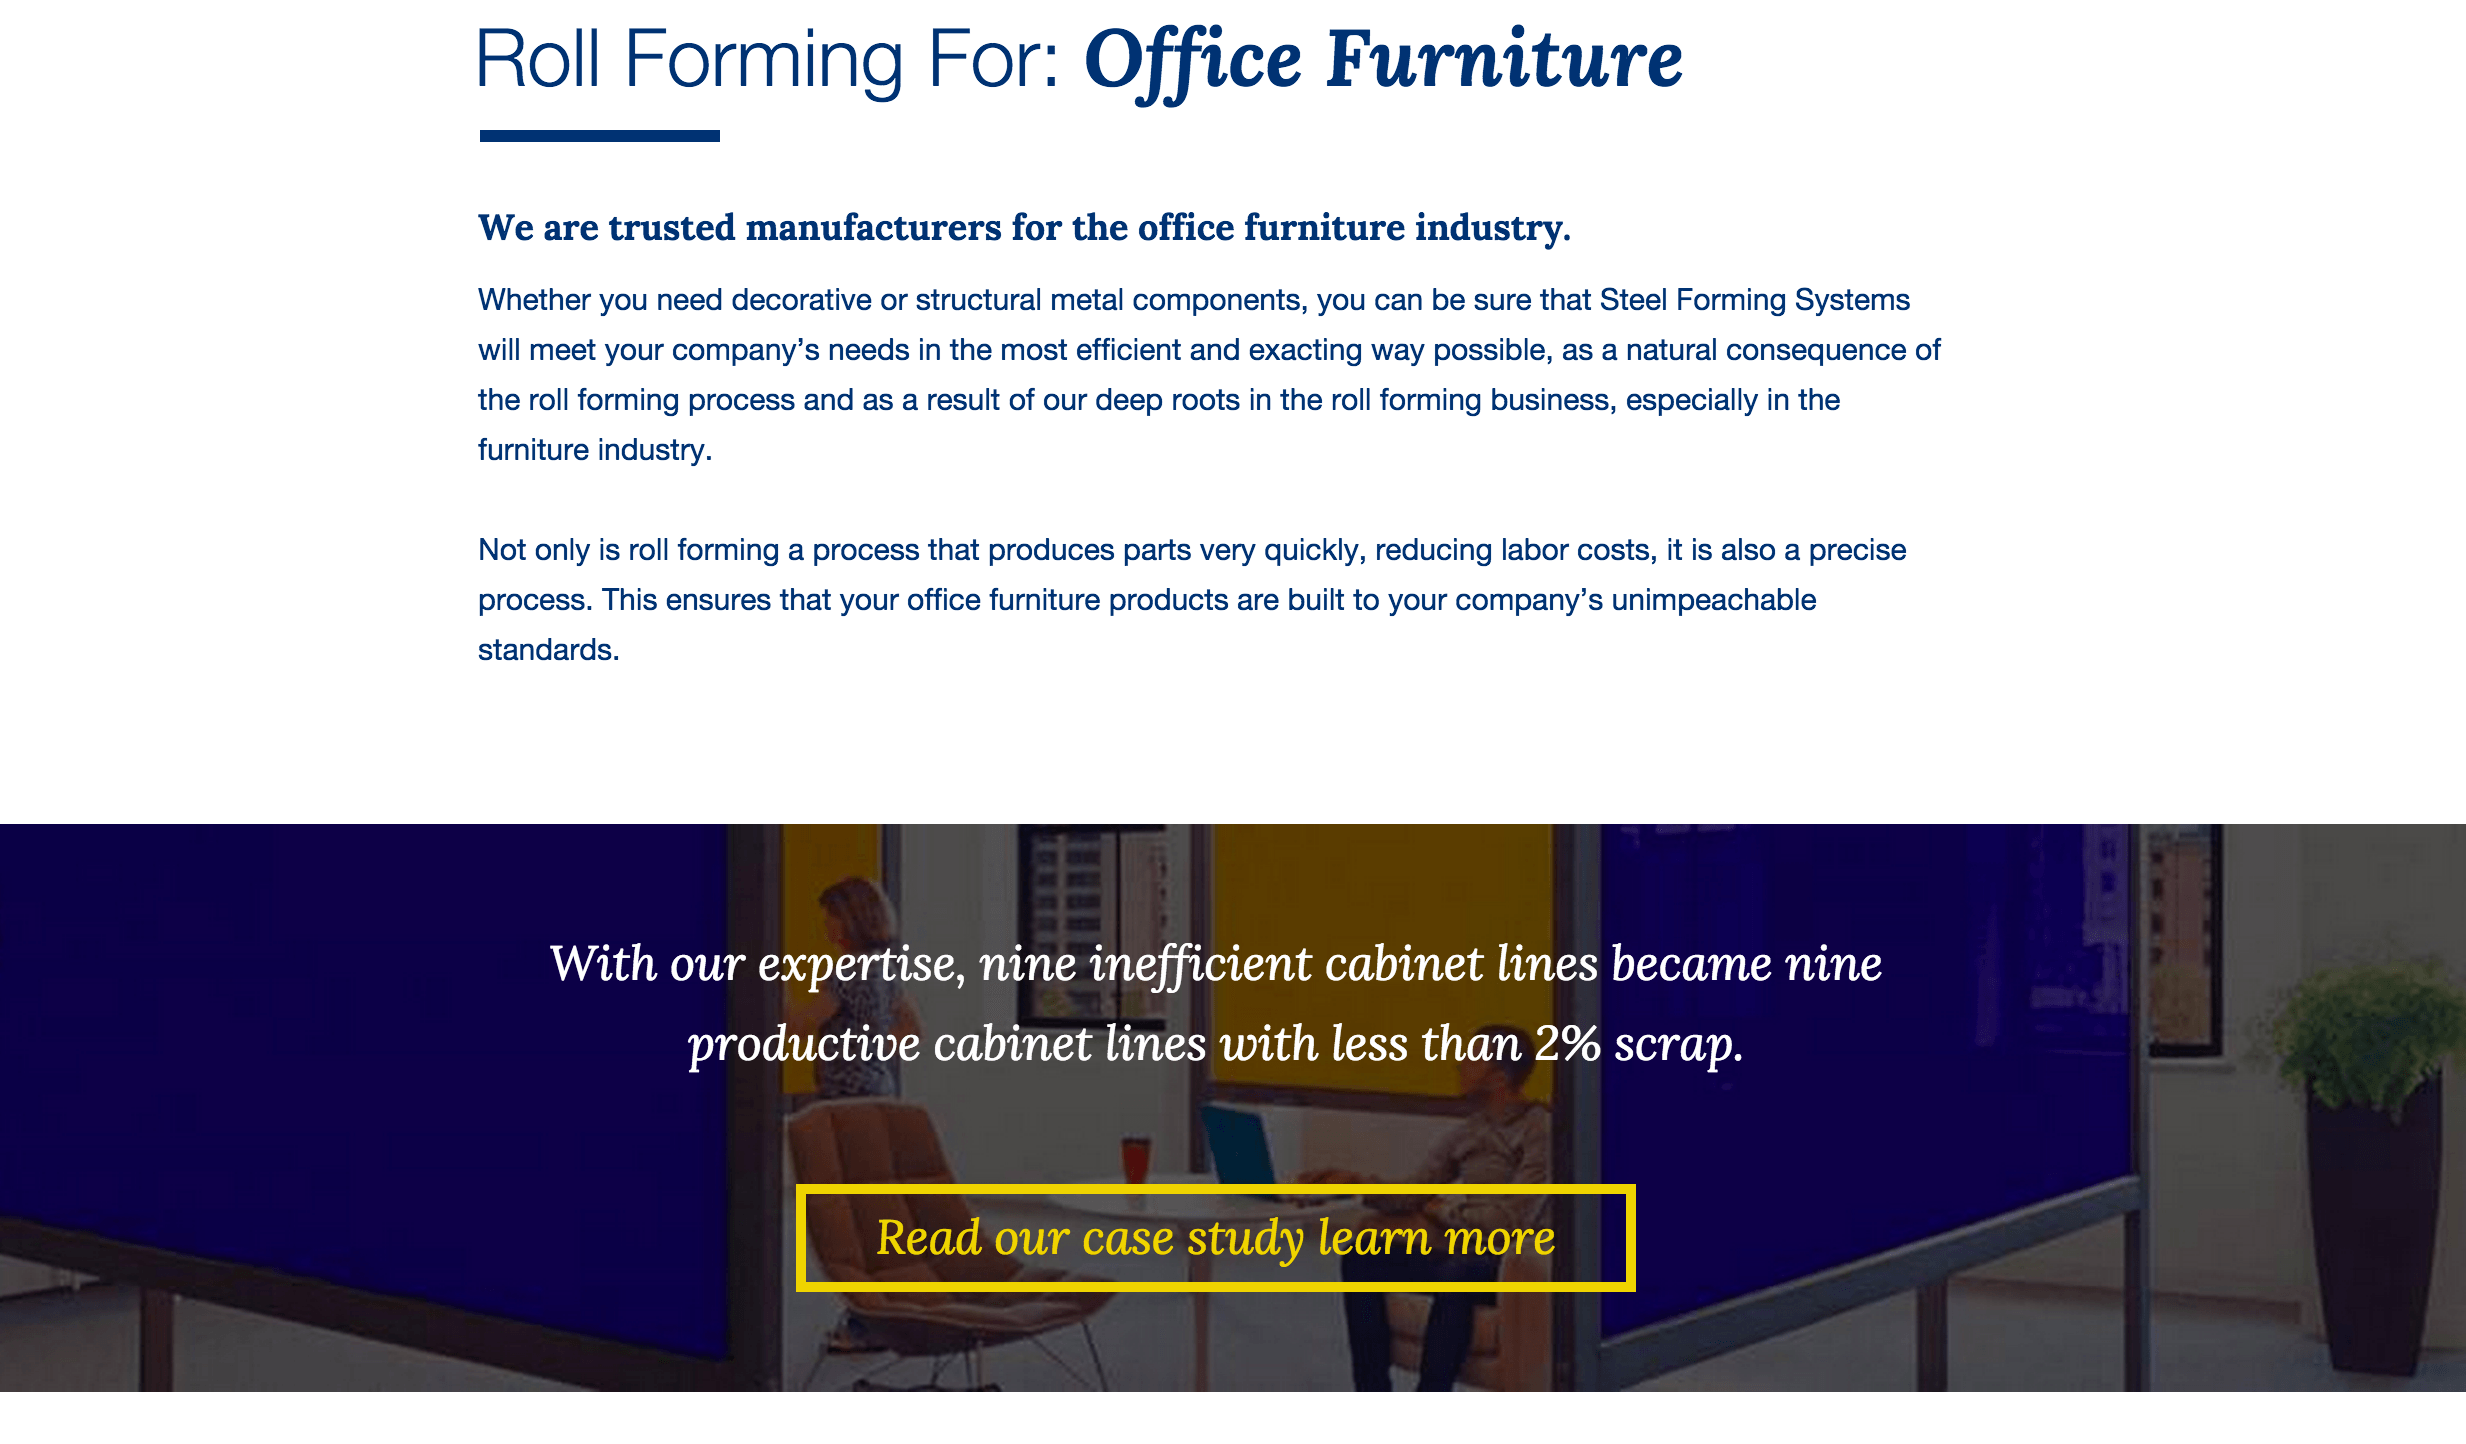 Example Manufacturing Case Study - Roll Forming for Office Furniture Industry